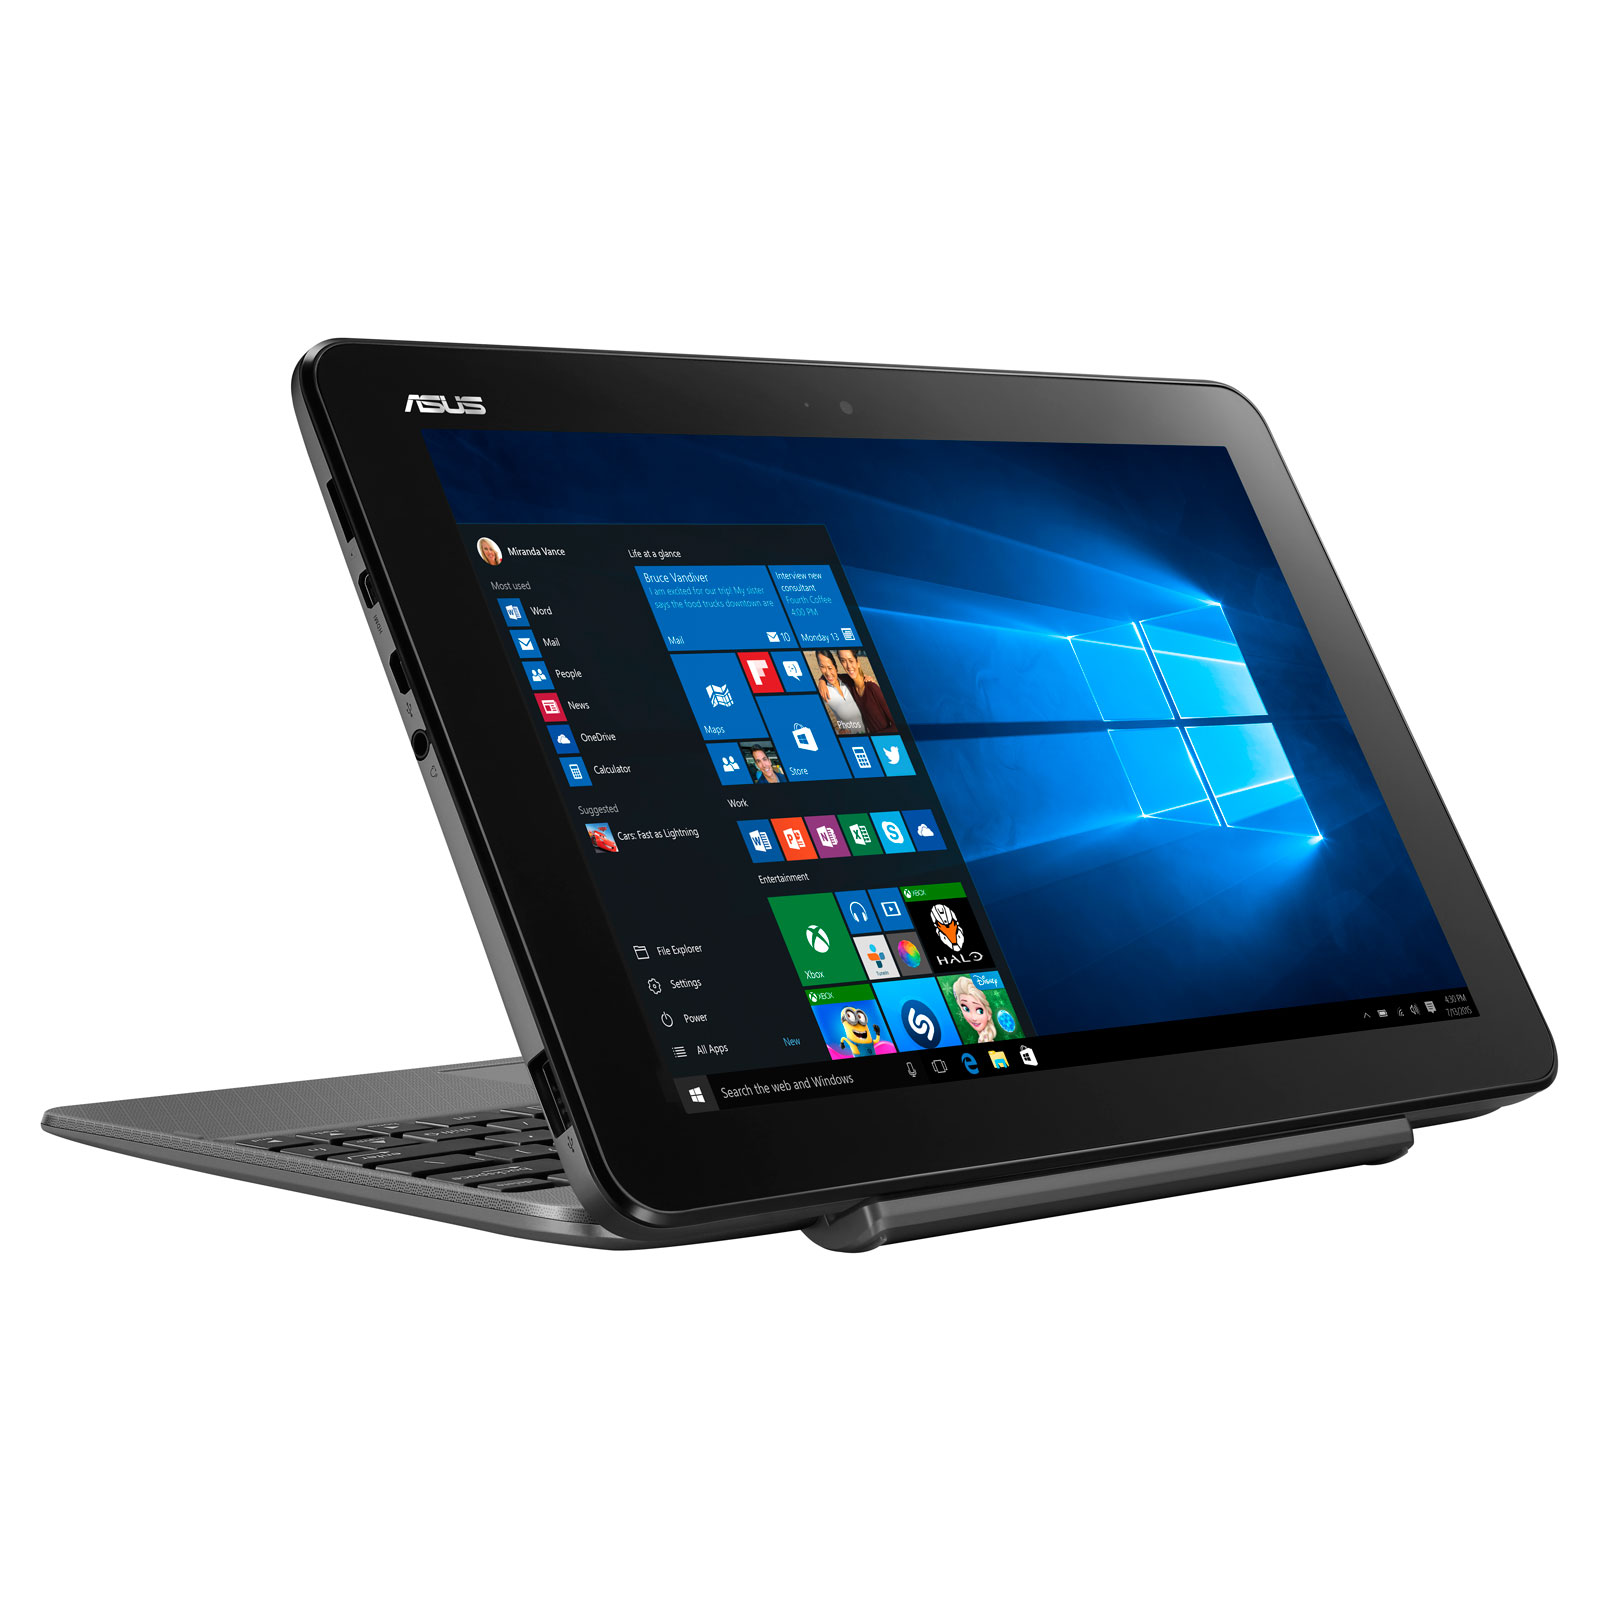 Asus T101HA-GR029RB - PC portable Asus - Cybertek.fr - 3